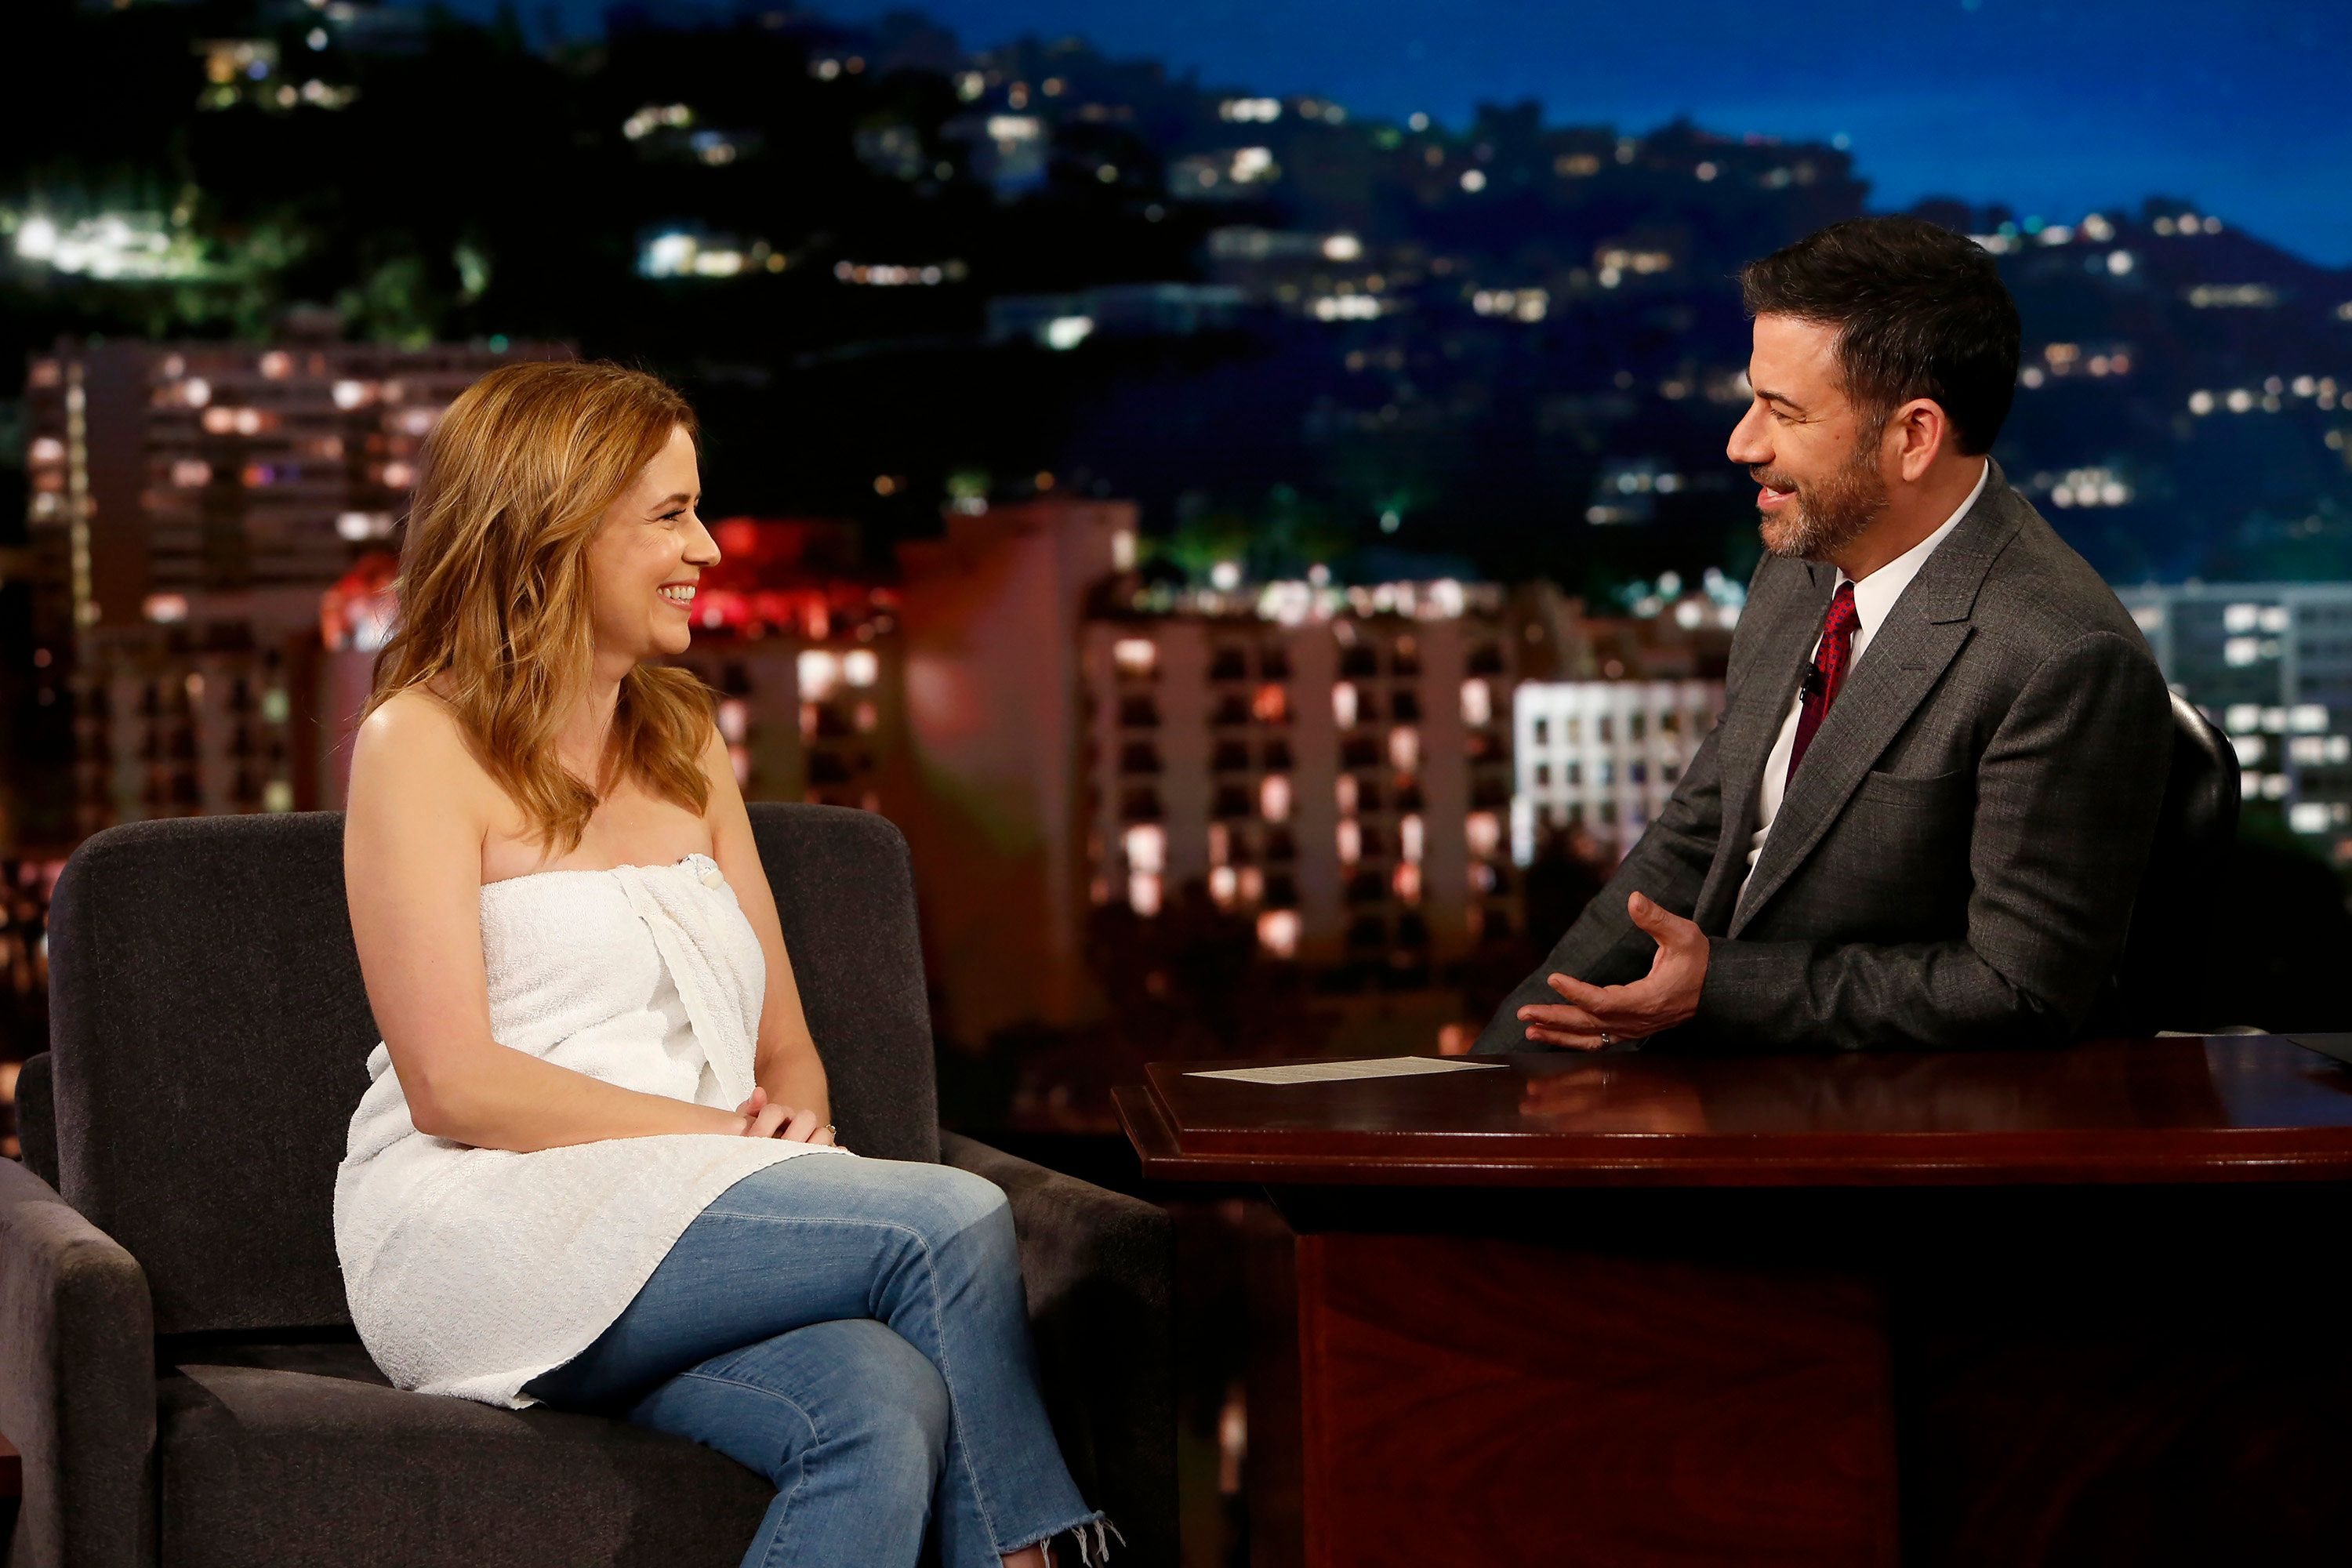 Jenna Fischer wears a towel for Kimmel interview following wardrobe malfunction